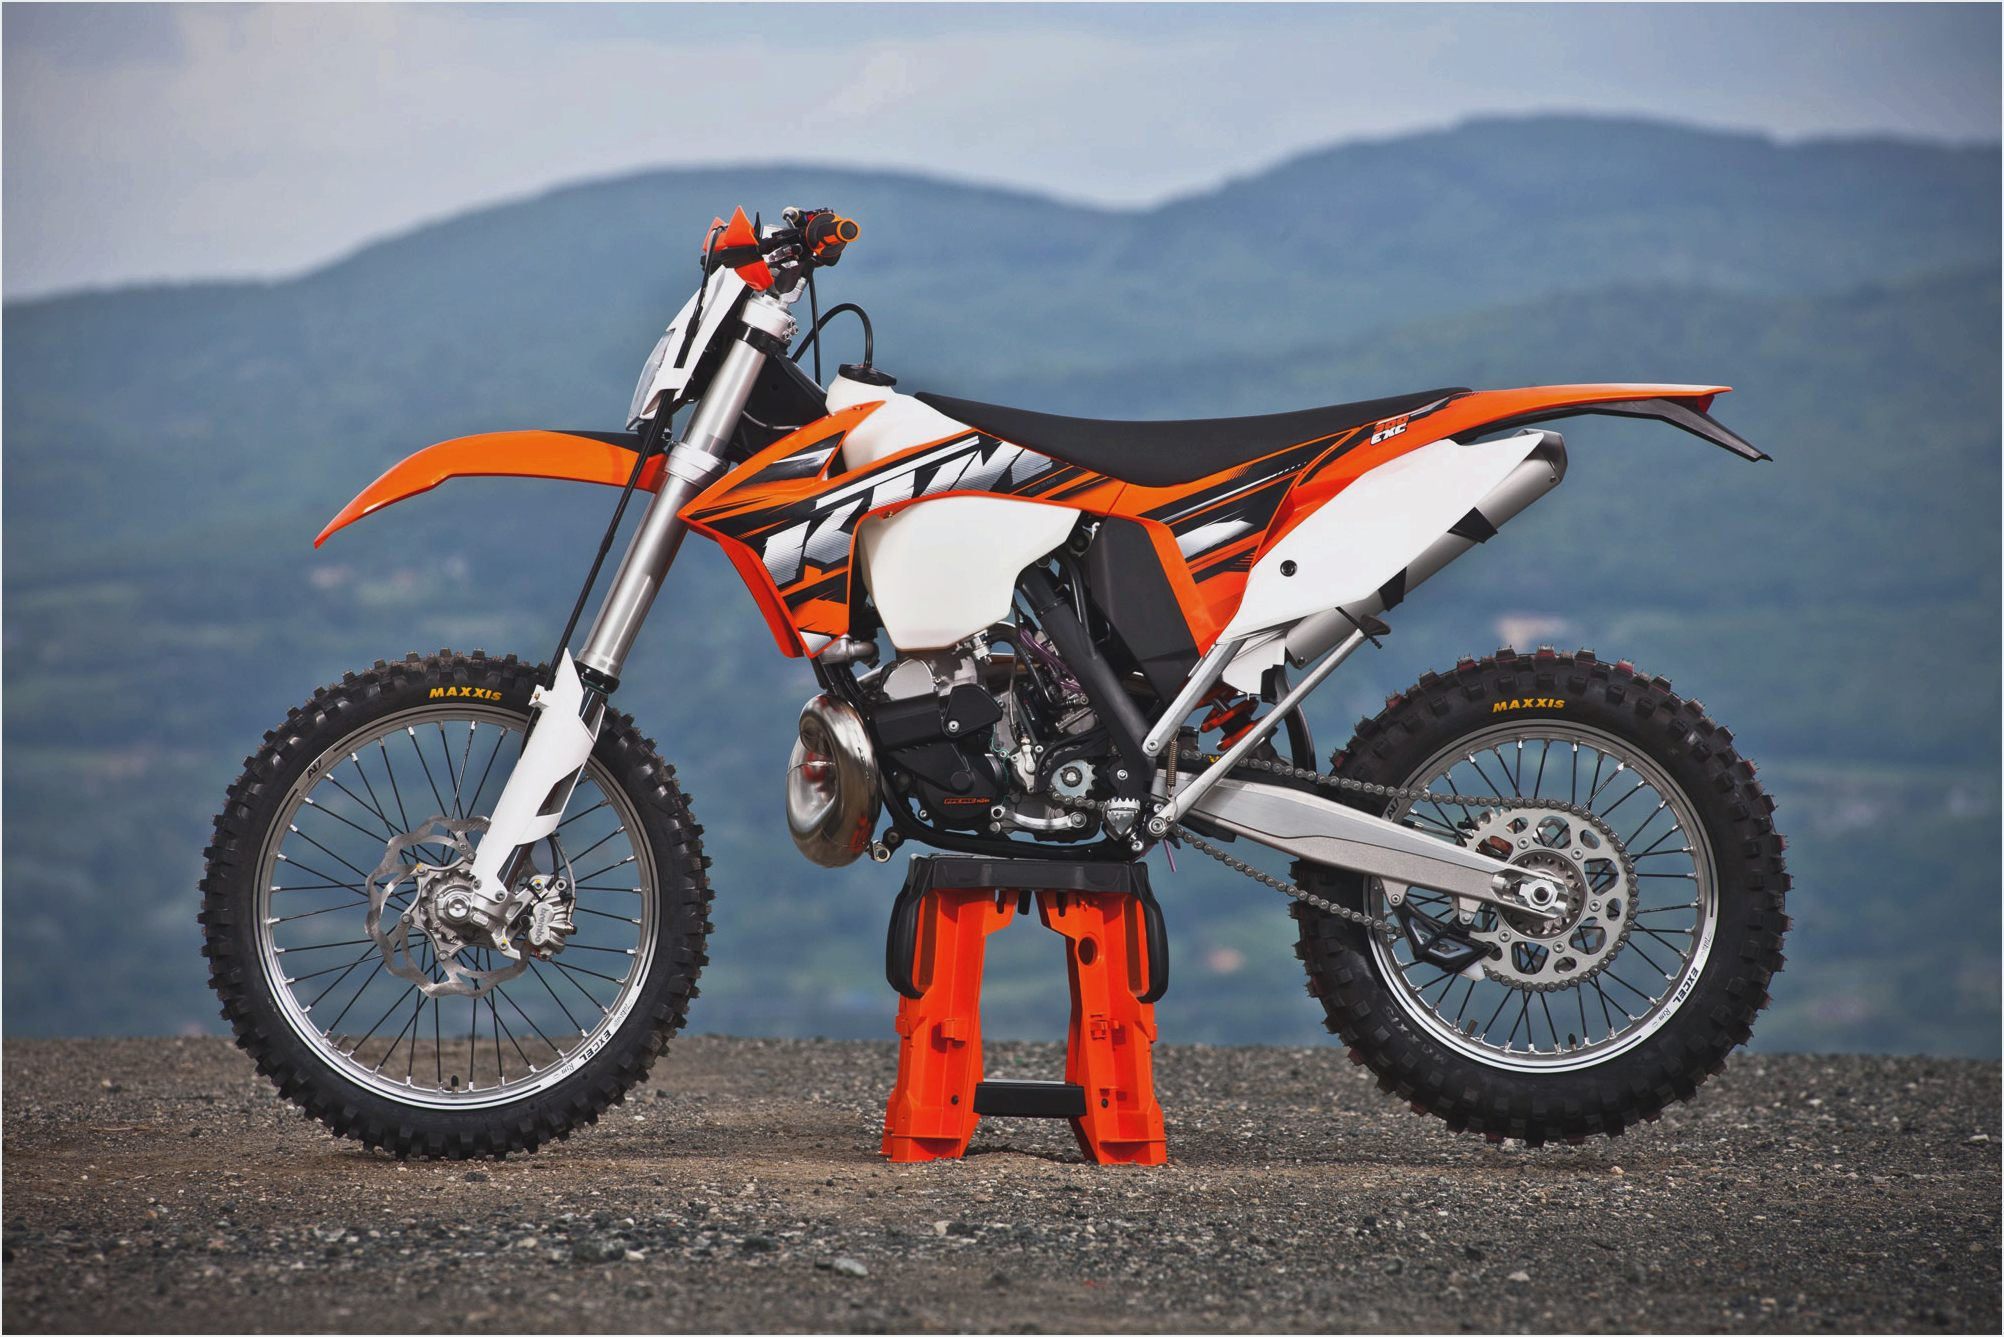 KTM 300 MXC 2002 images #85472